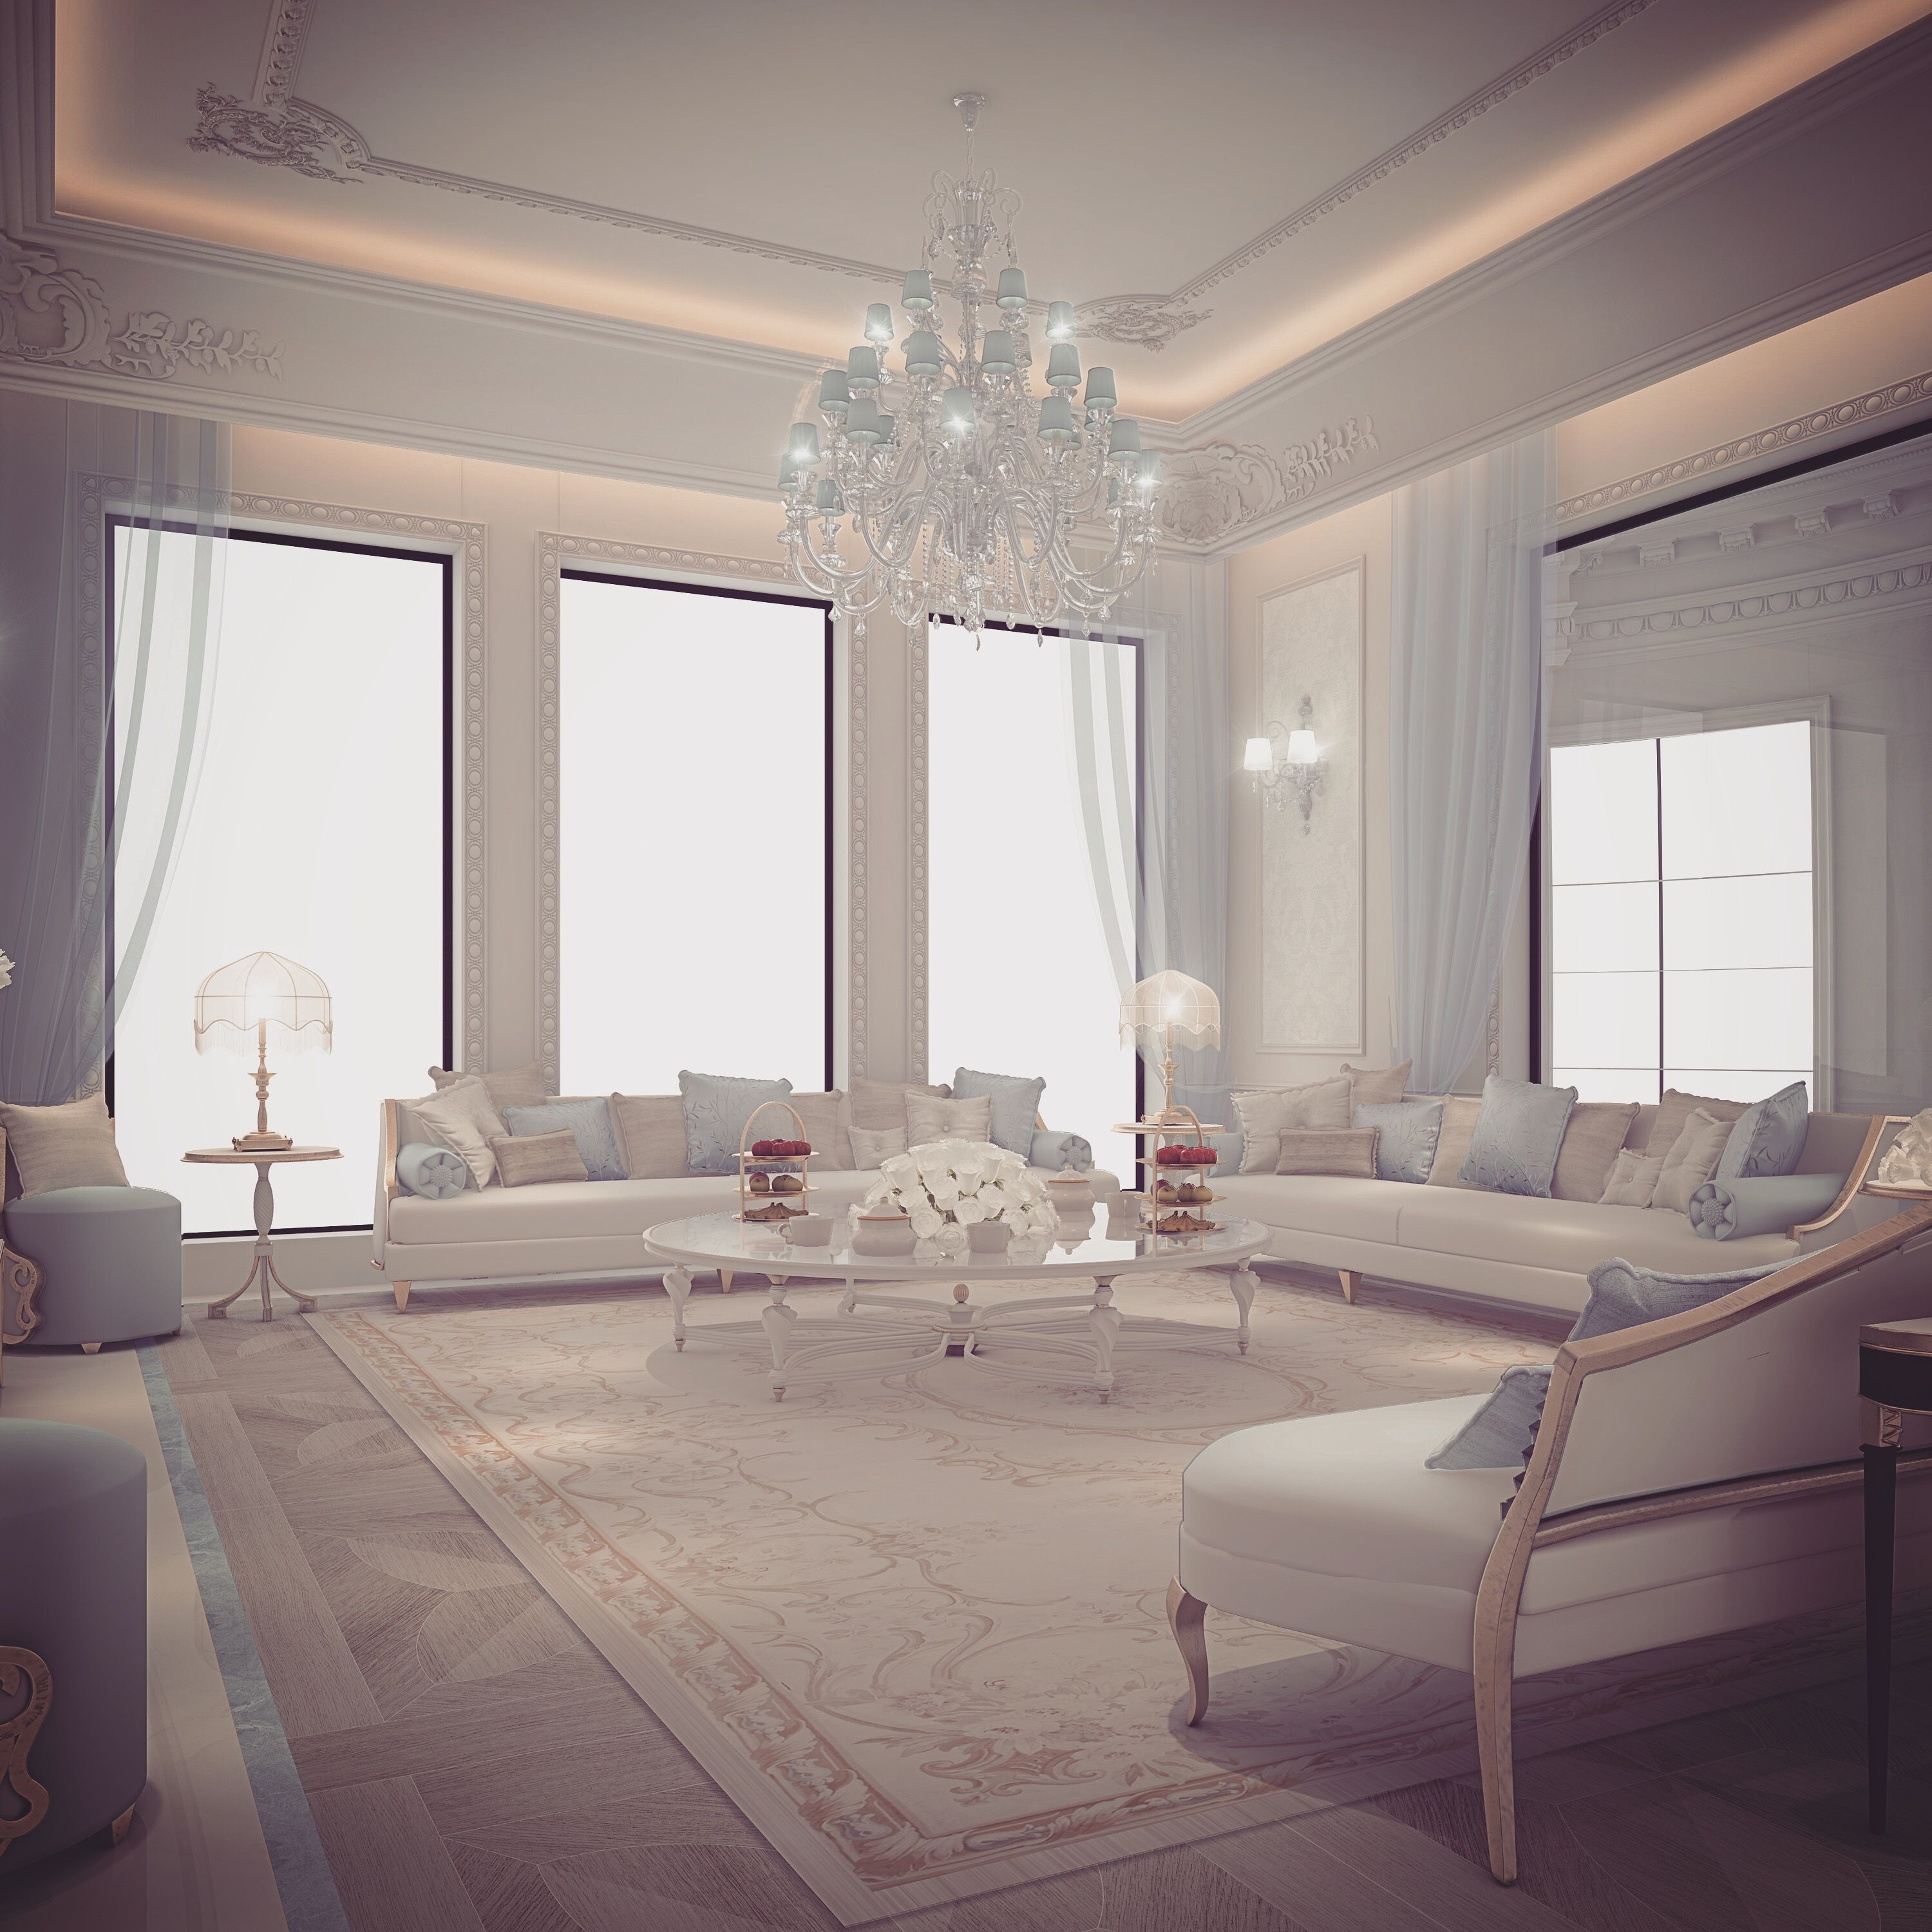 Ions Interior Design Dubai family living room design . by ions design (with images